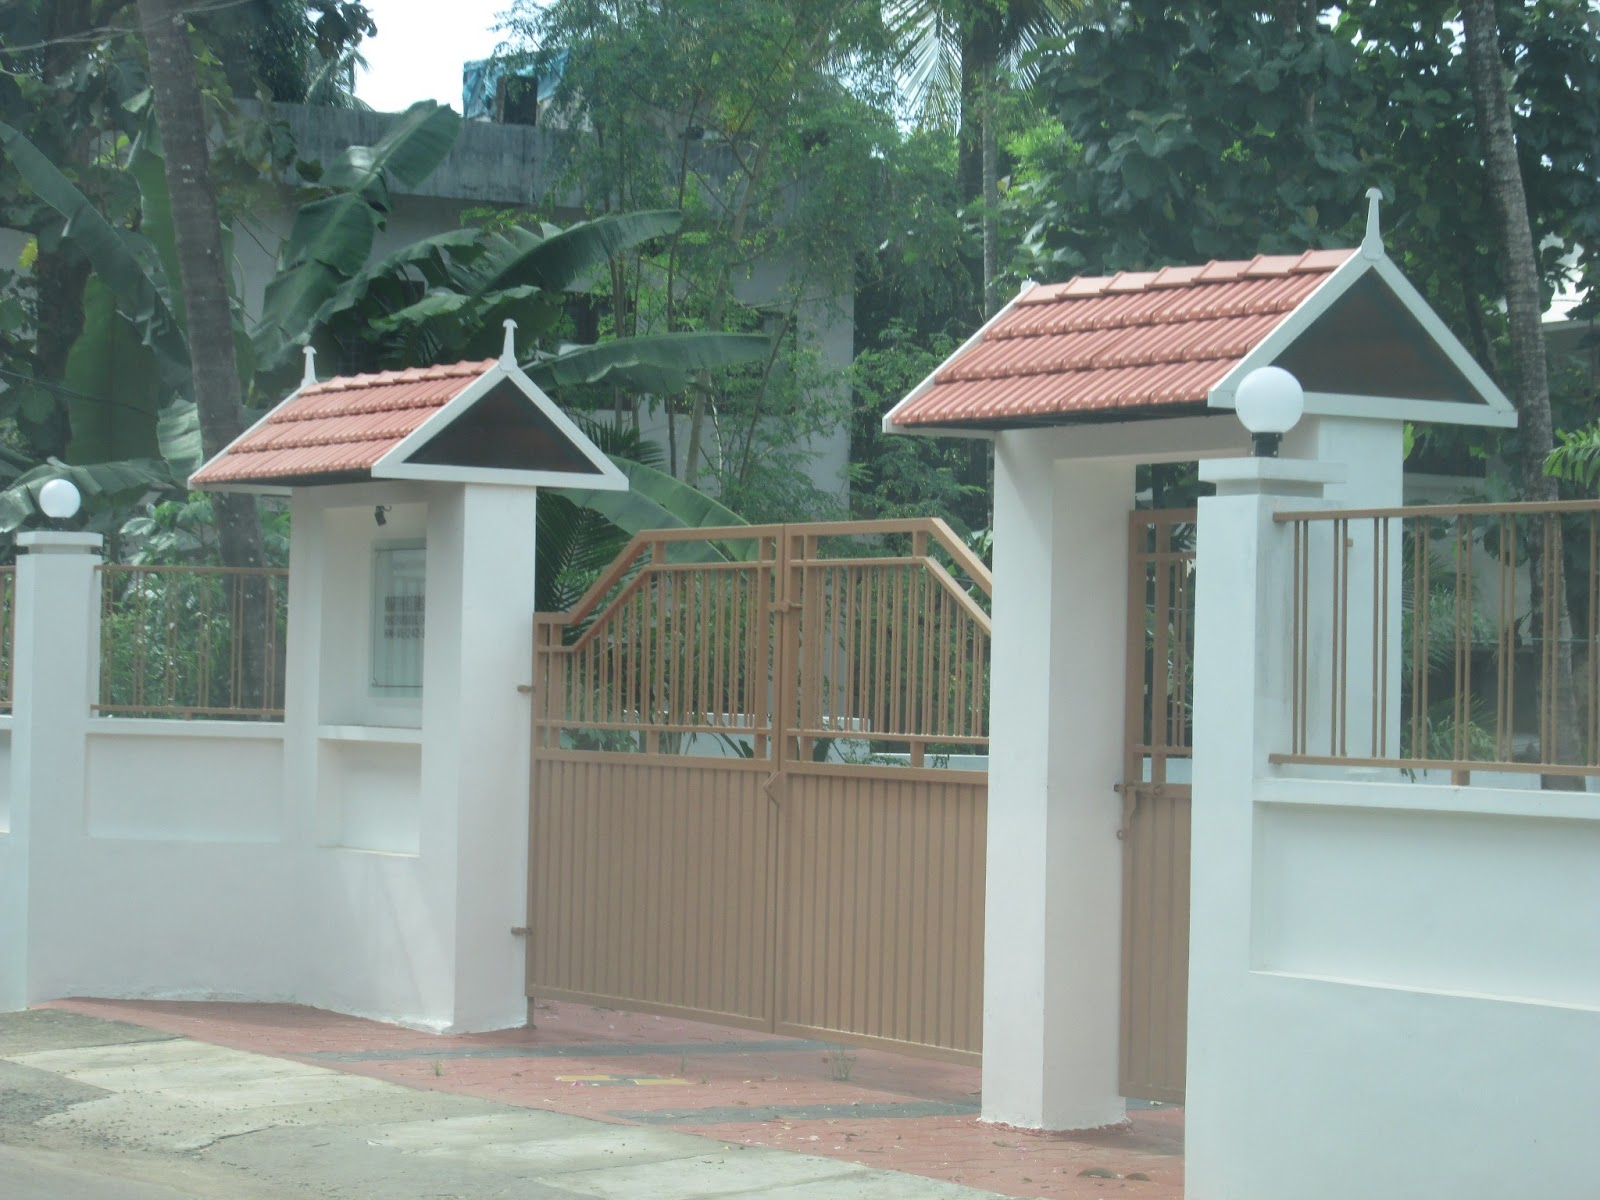 Padippura design images shape kerala home - Gate With Kerala Style Twin Padippura Kerala Gate Designs